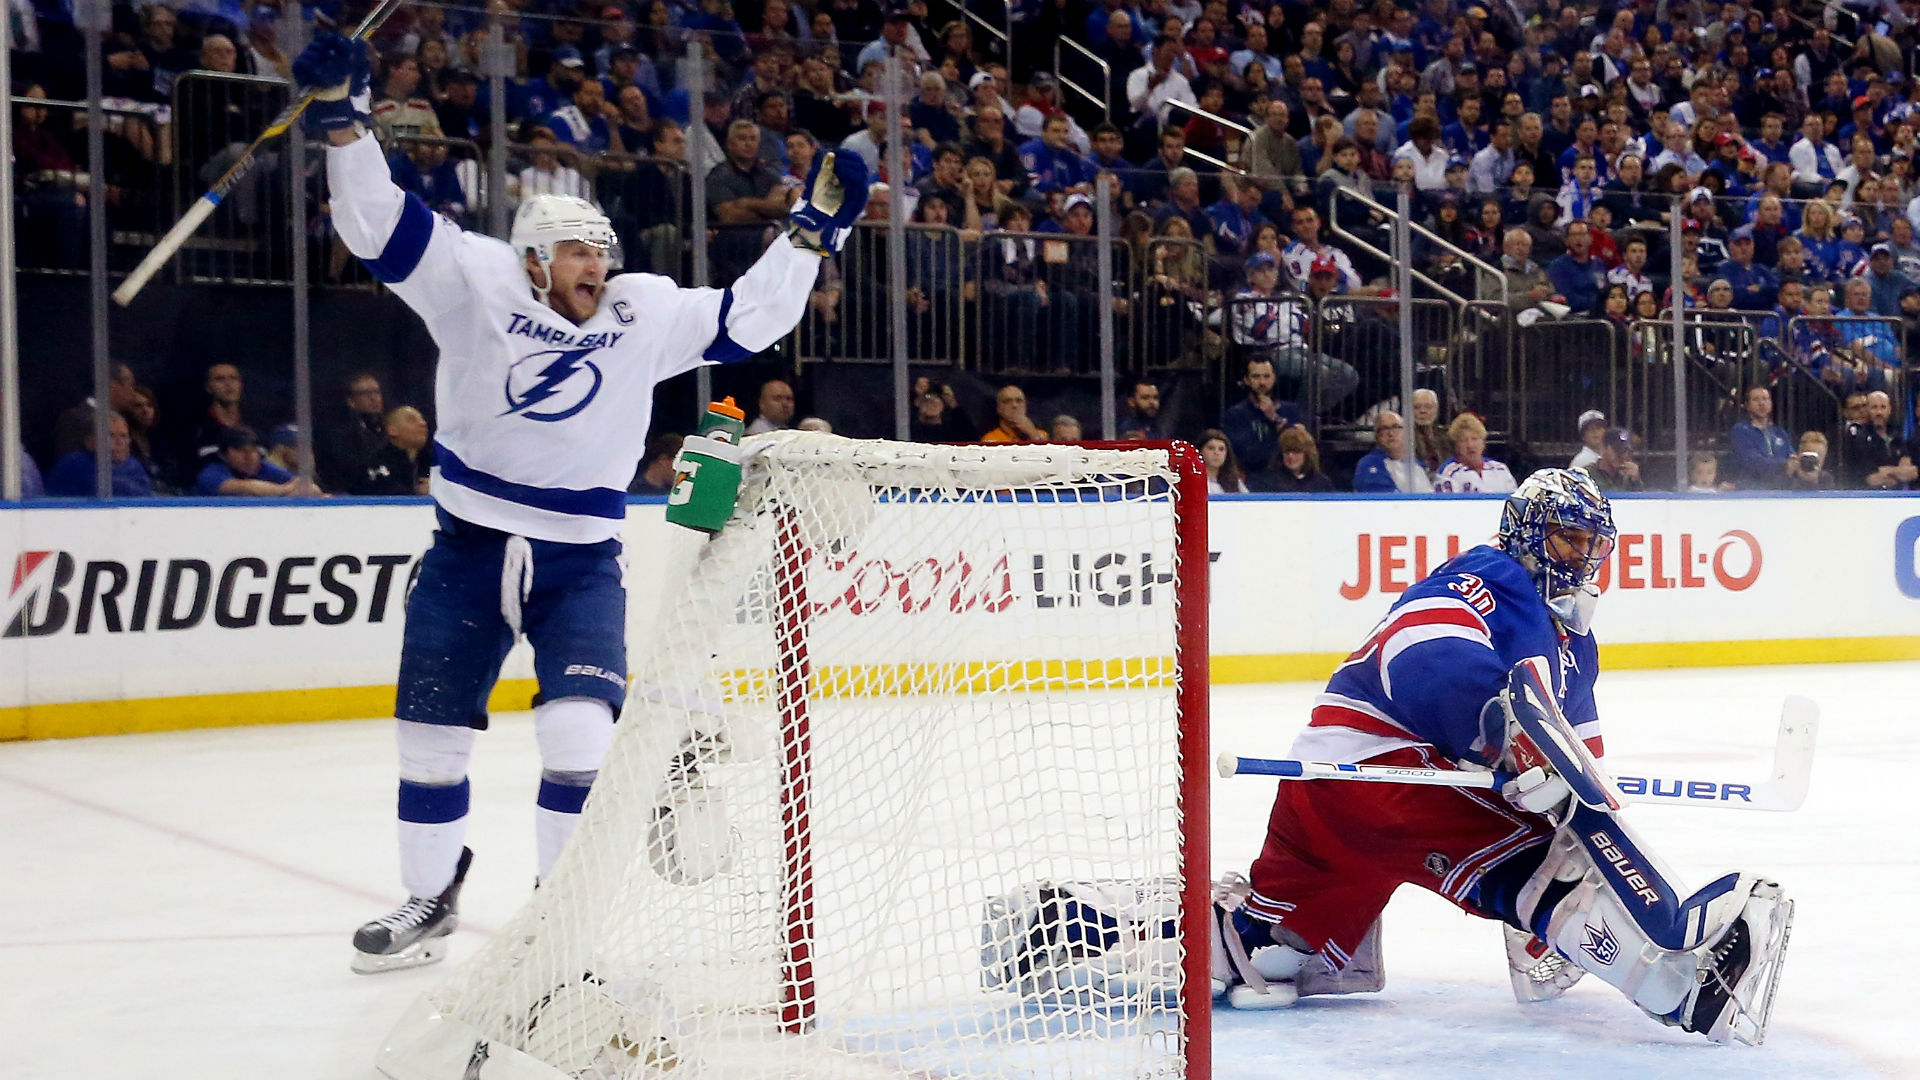 Eastern Conference finals: Return of Steven Stamkos has Lightning confident, Rangers on edge